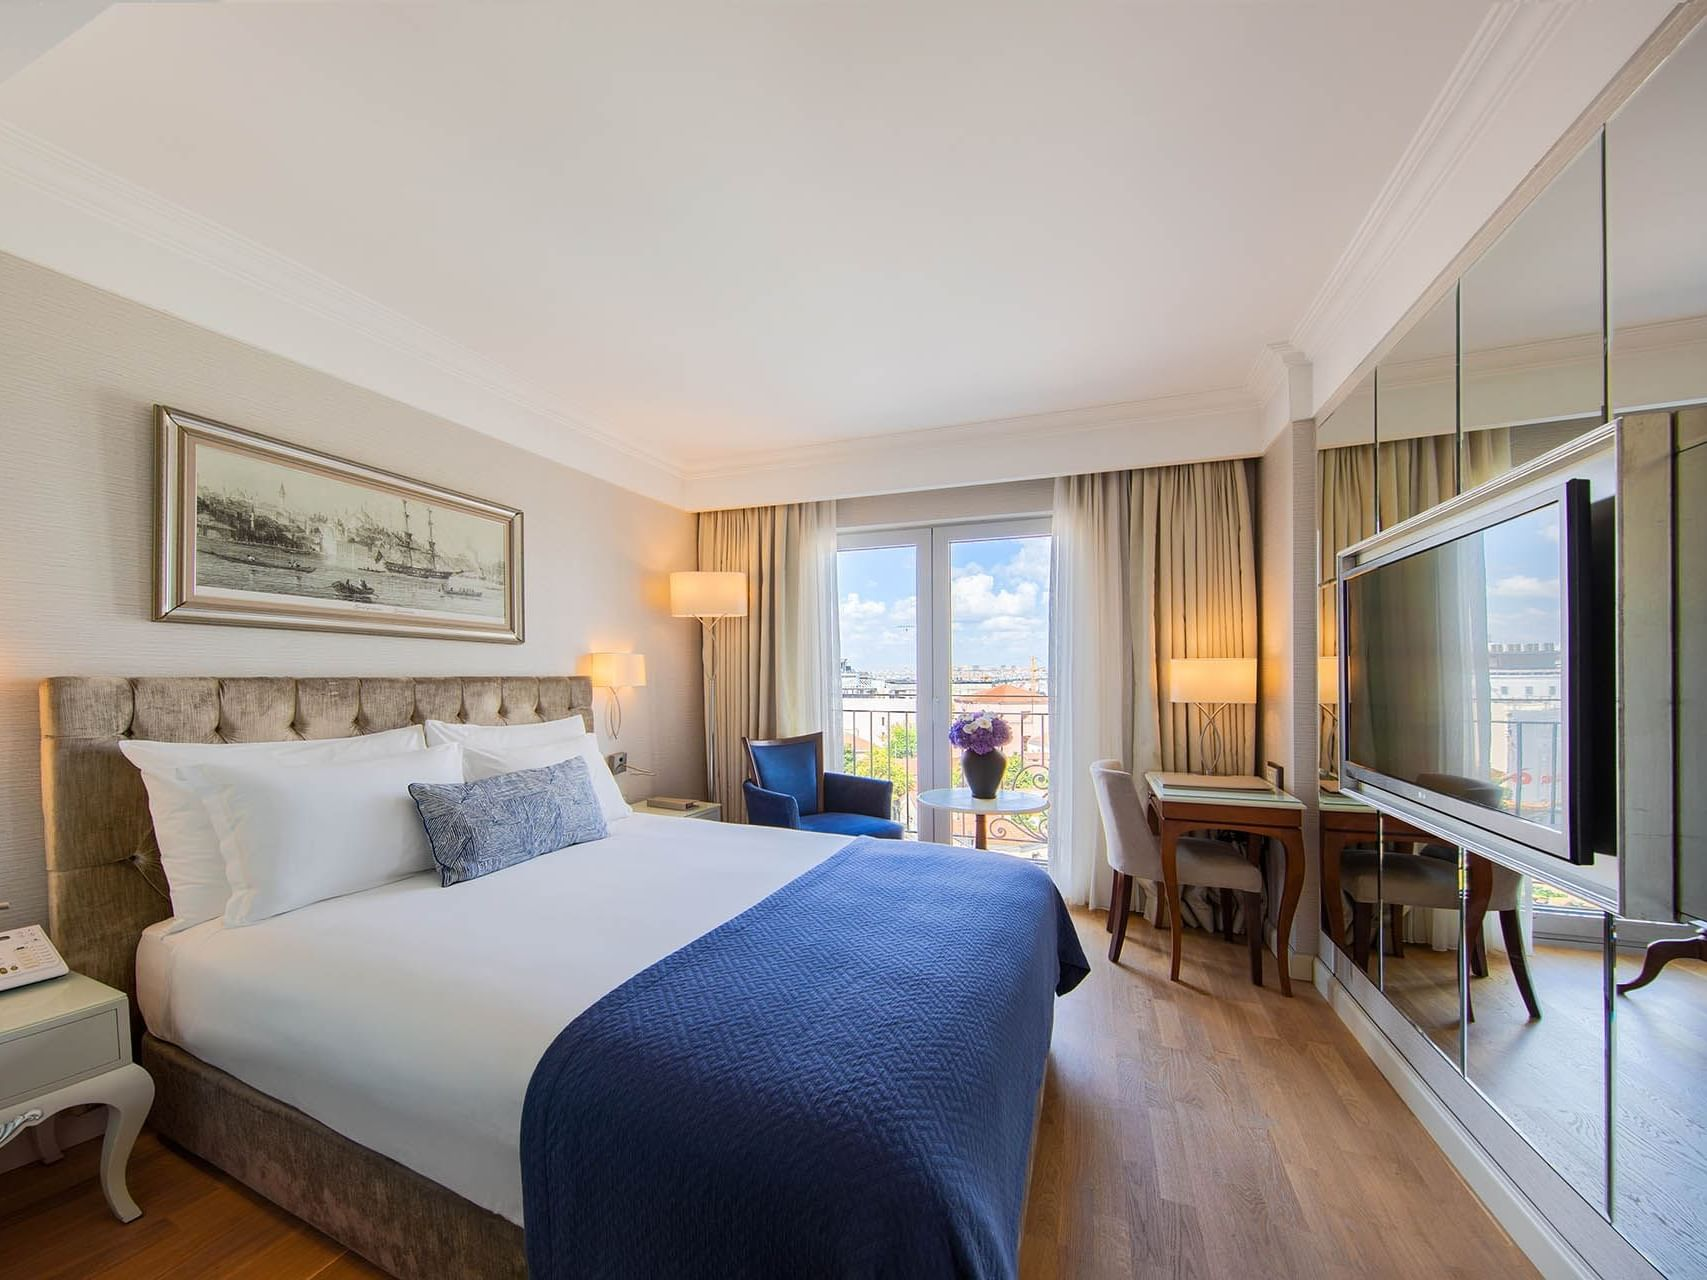 Superior Room with one bed at CVK Taksim Hotel Istanbul